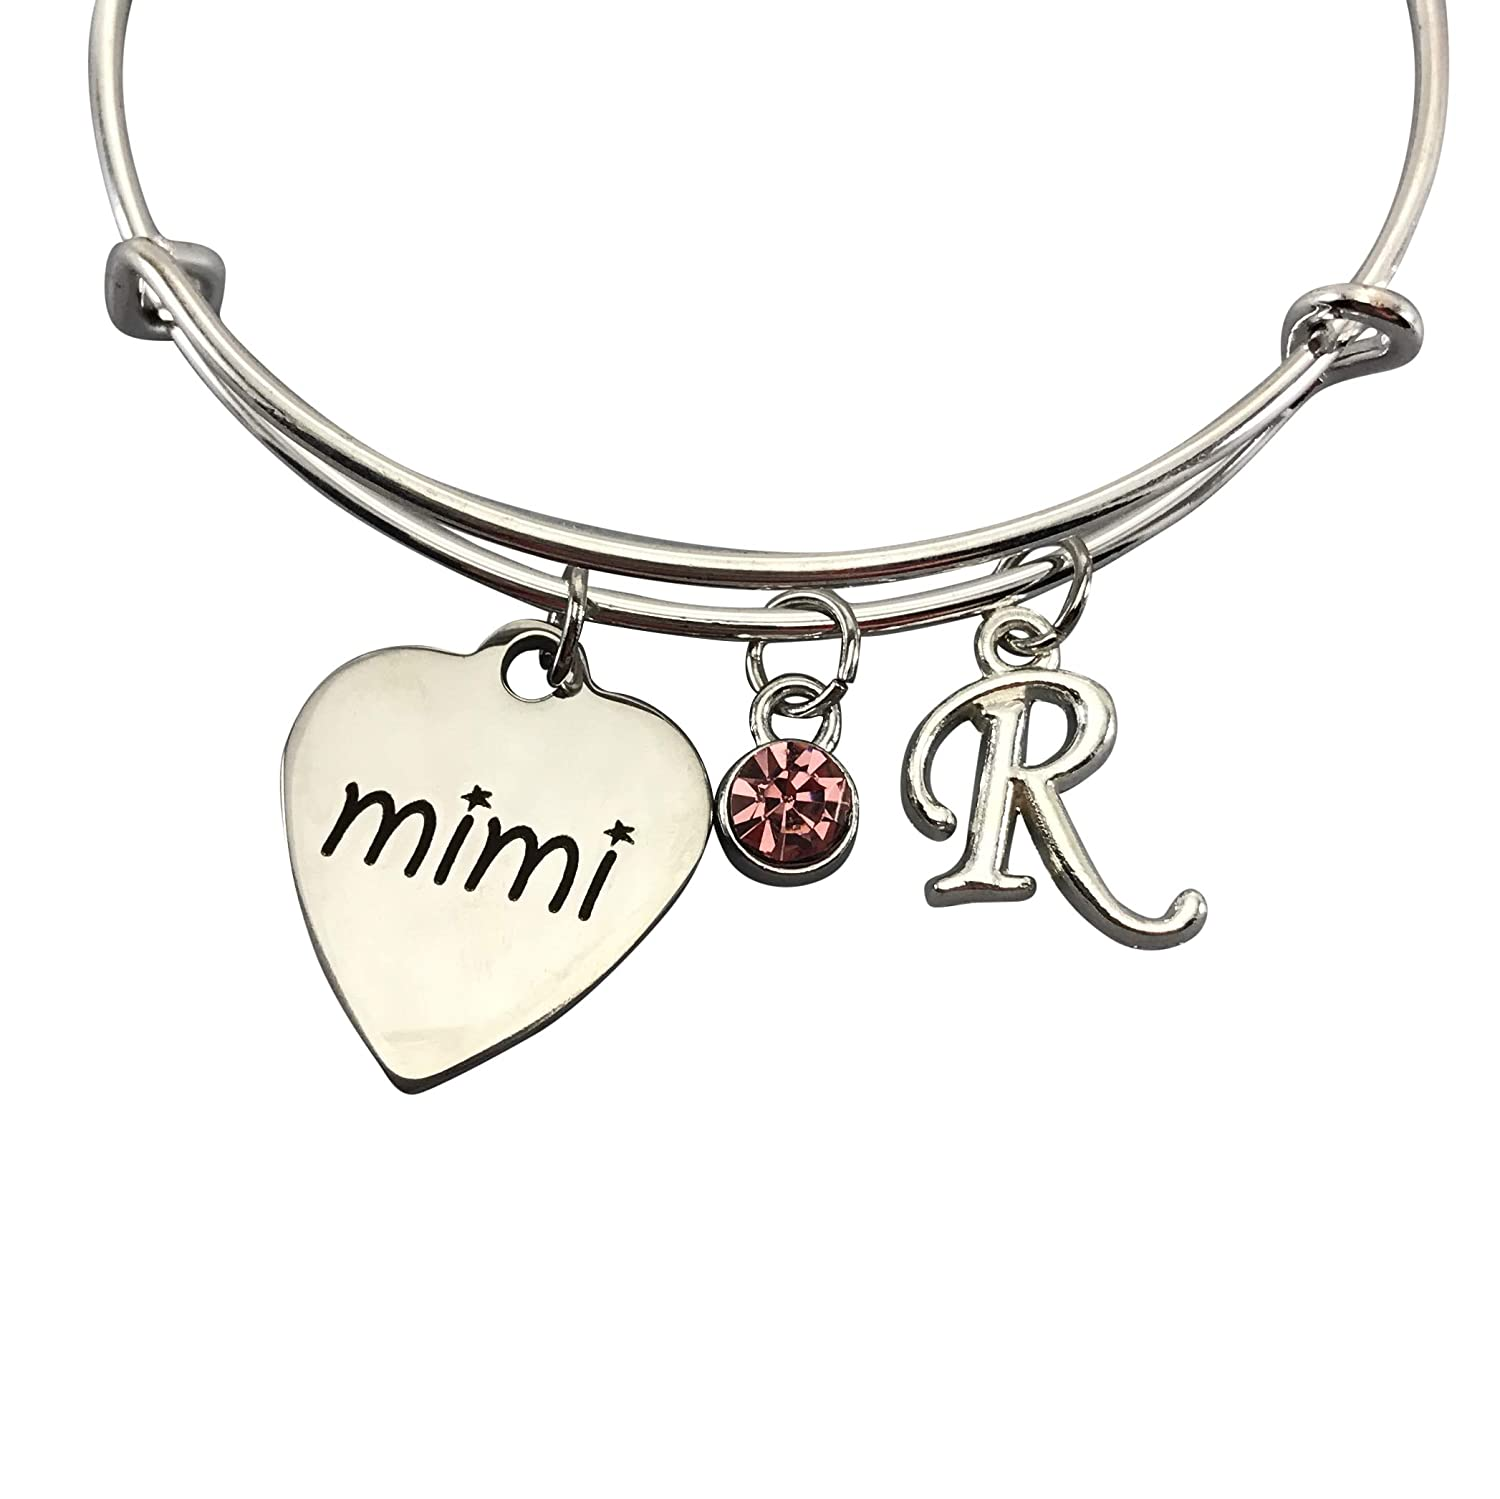 Mimi - Gifts Gift for Grandma- Jewelry Char Charlotte Mall Grandmother Free shipping